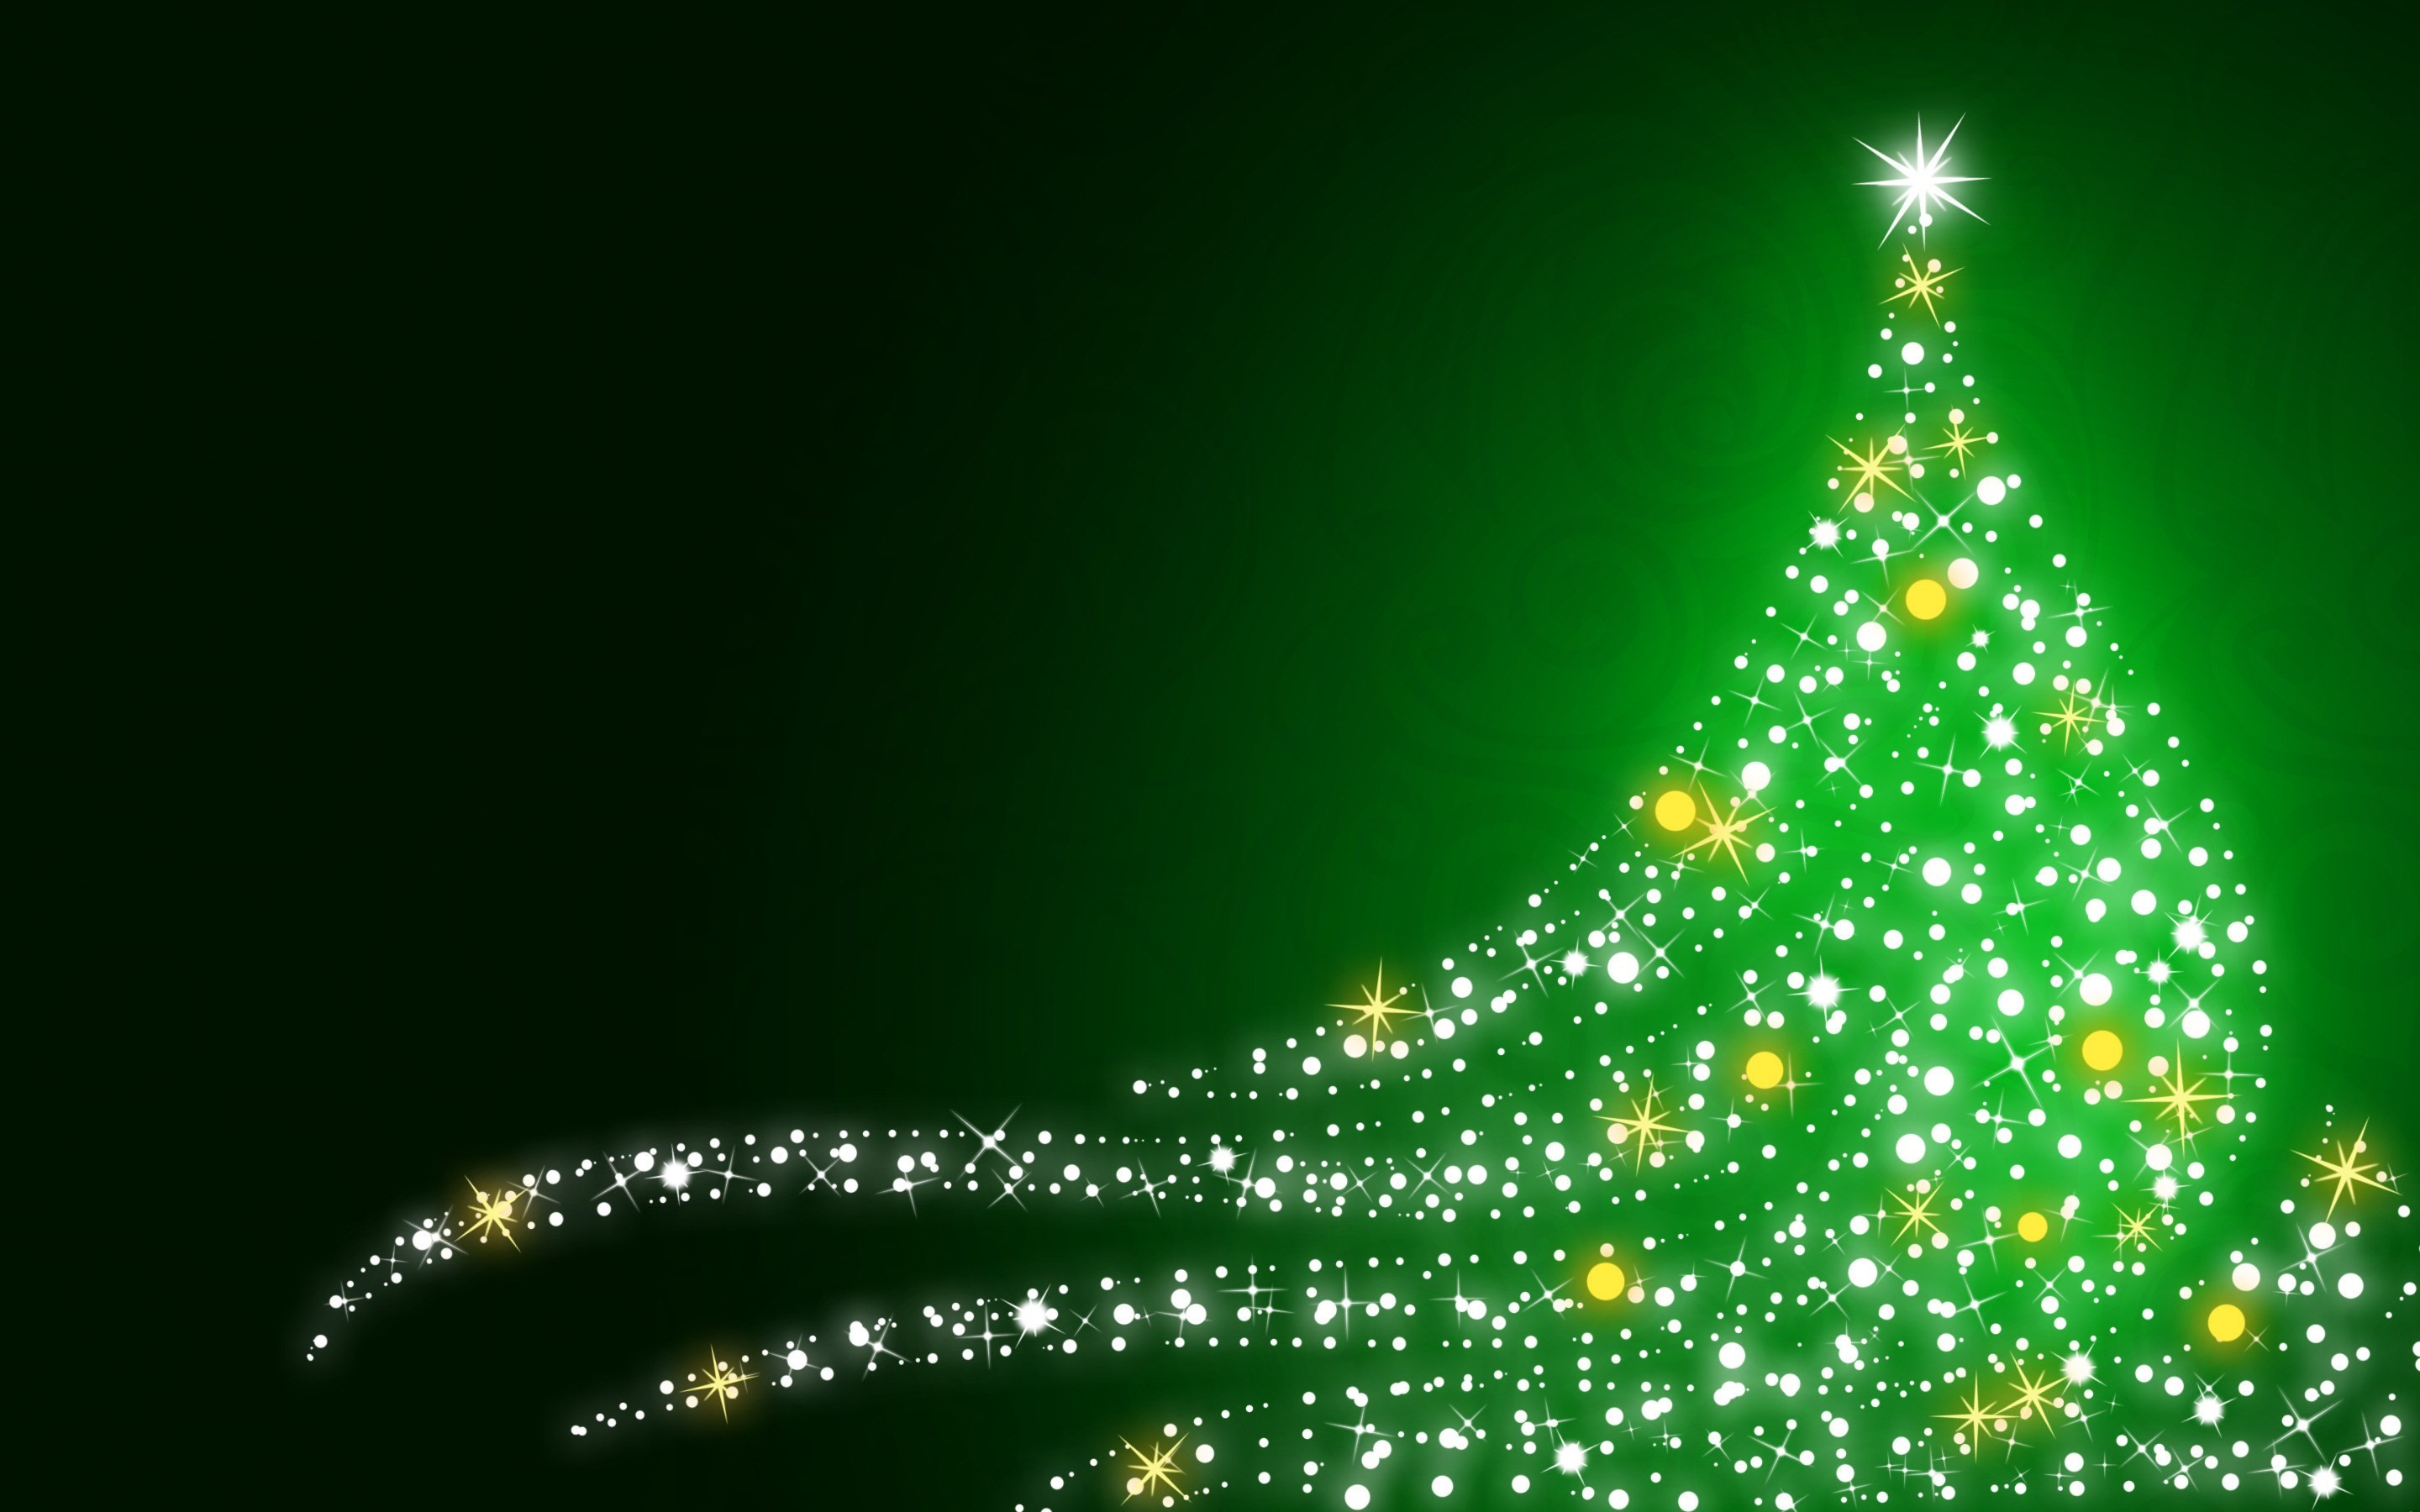 2880x1800 2880x1920px christmas tree background hd by Carr Bush | ololoshka |  Pinterest | Christmas tree background